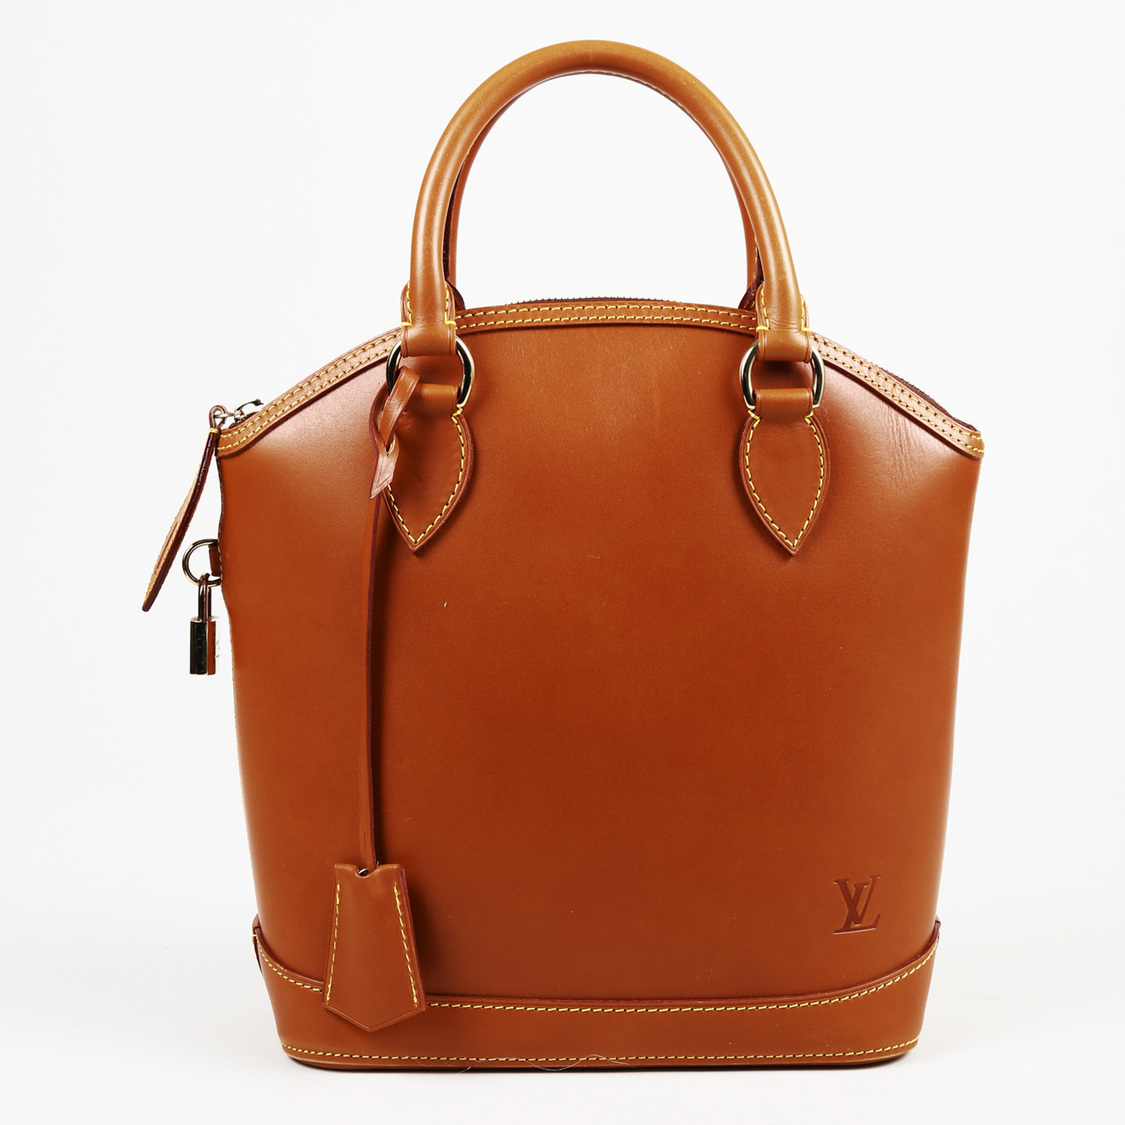 Details about Louis Vuitton Brown Leather